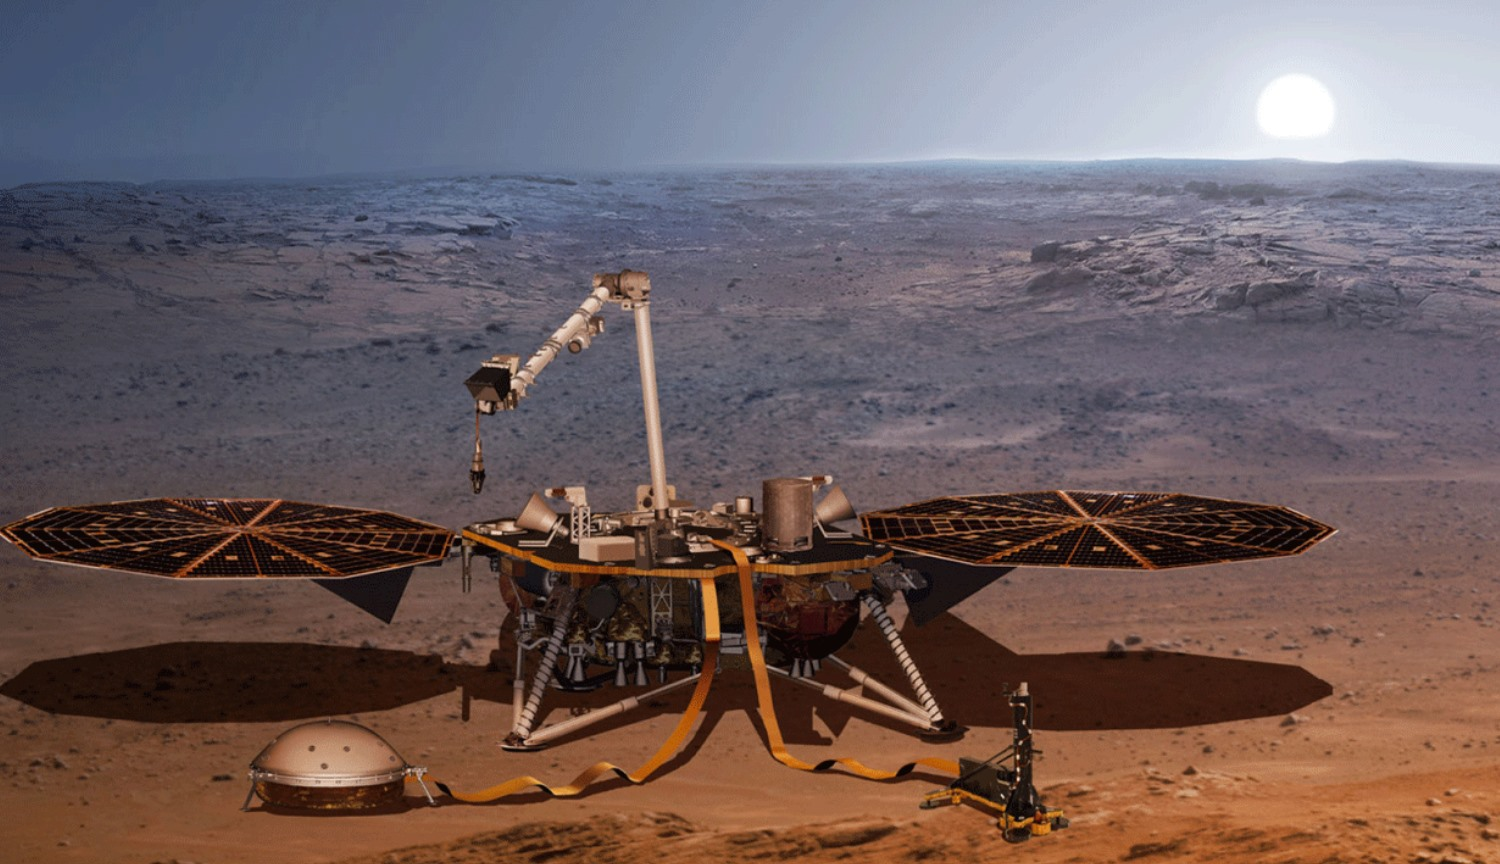 Seismometer Mars probe InSight received protection from wind and heat